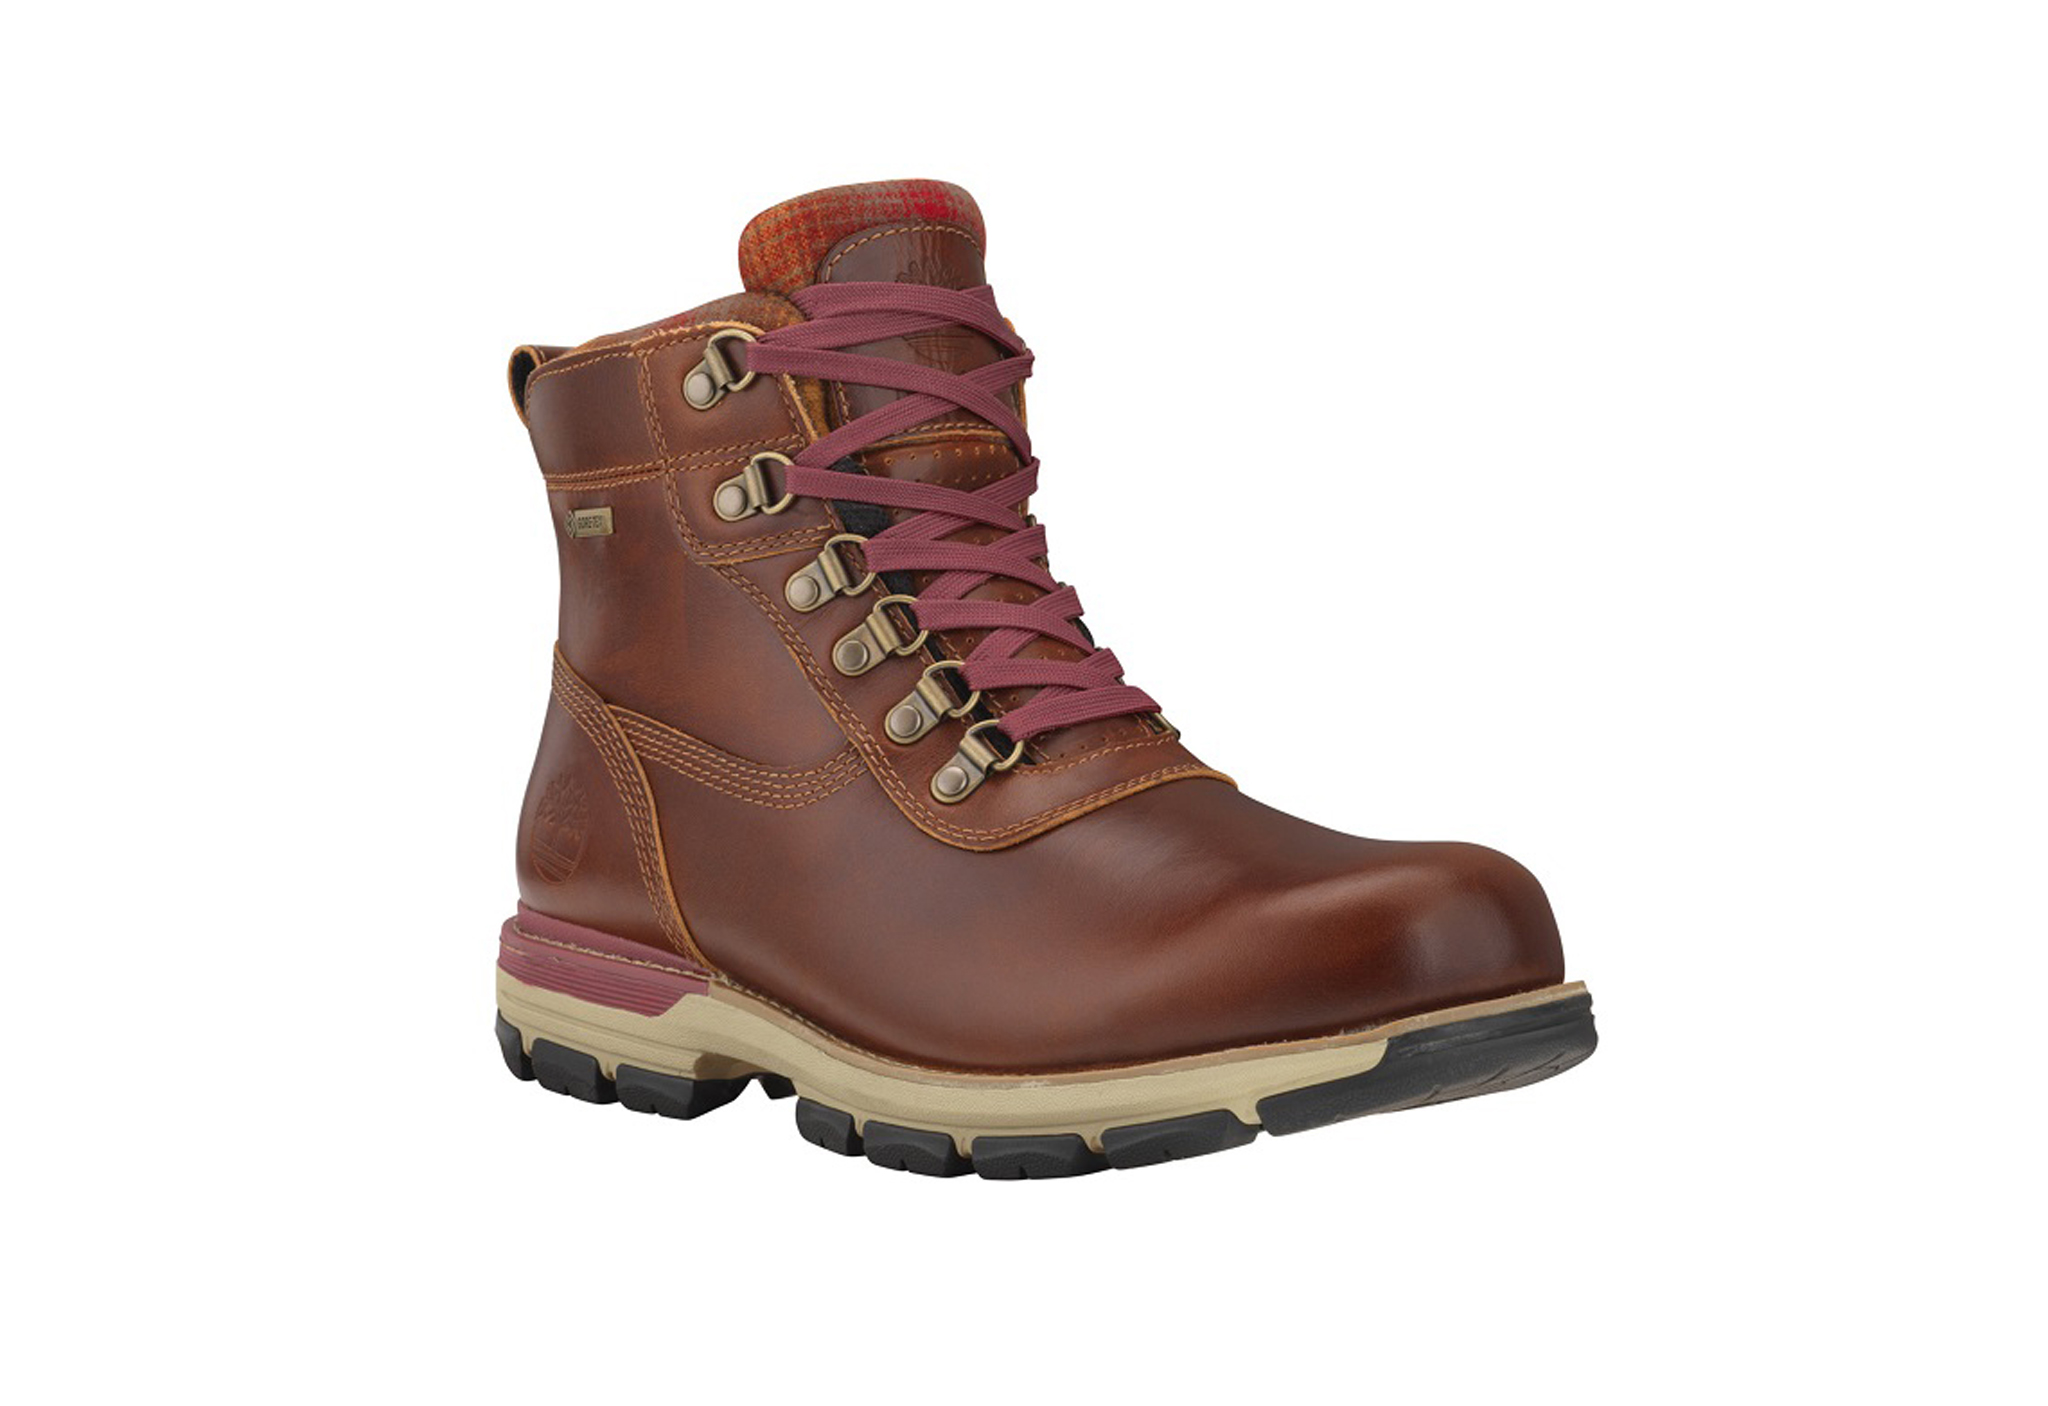 A Timberland rubber boot.